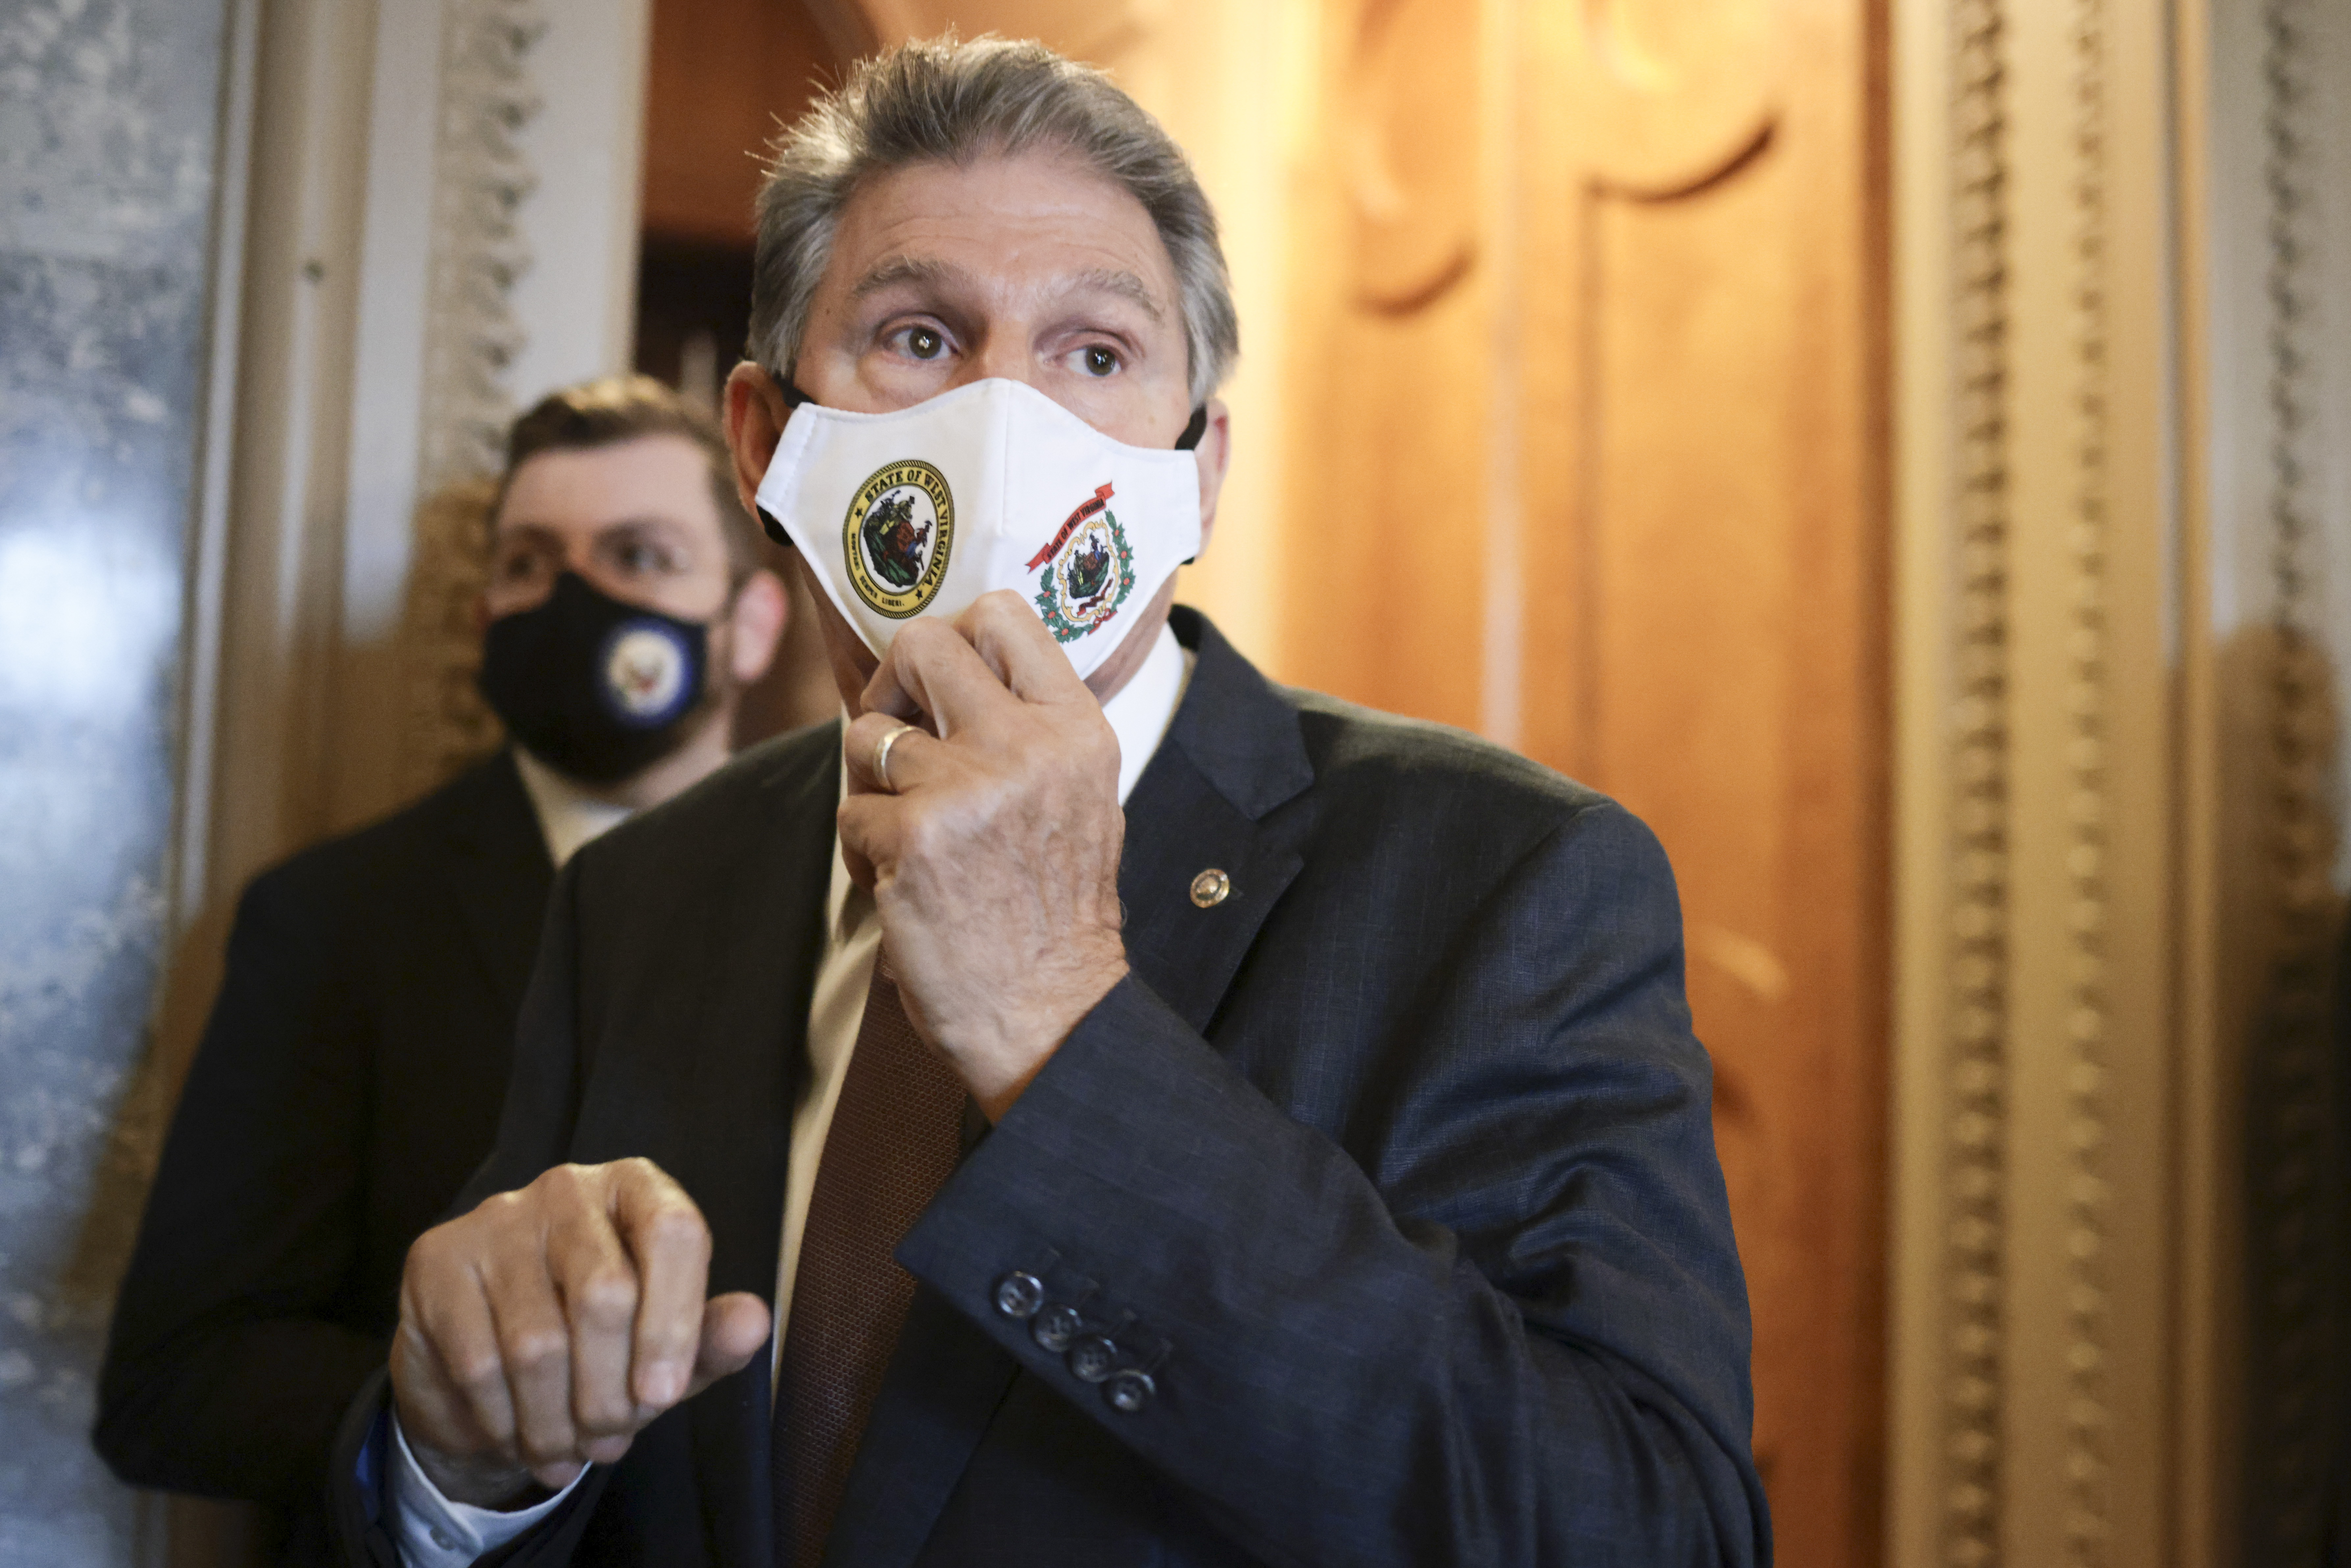 Sen. Joe Manchin (D-WV) adjusts his mask as he speaks to reporters on Capitol Hill.